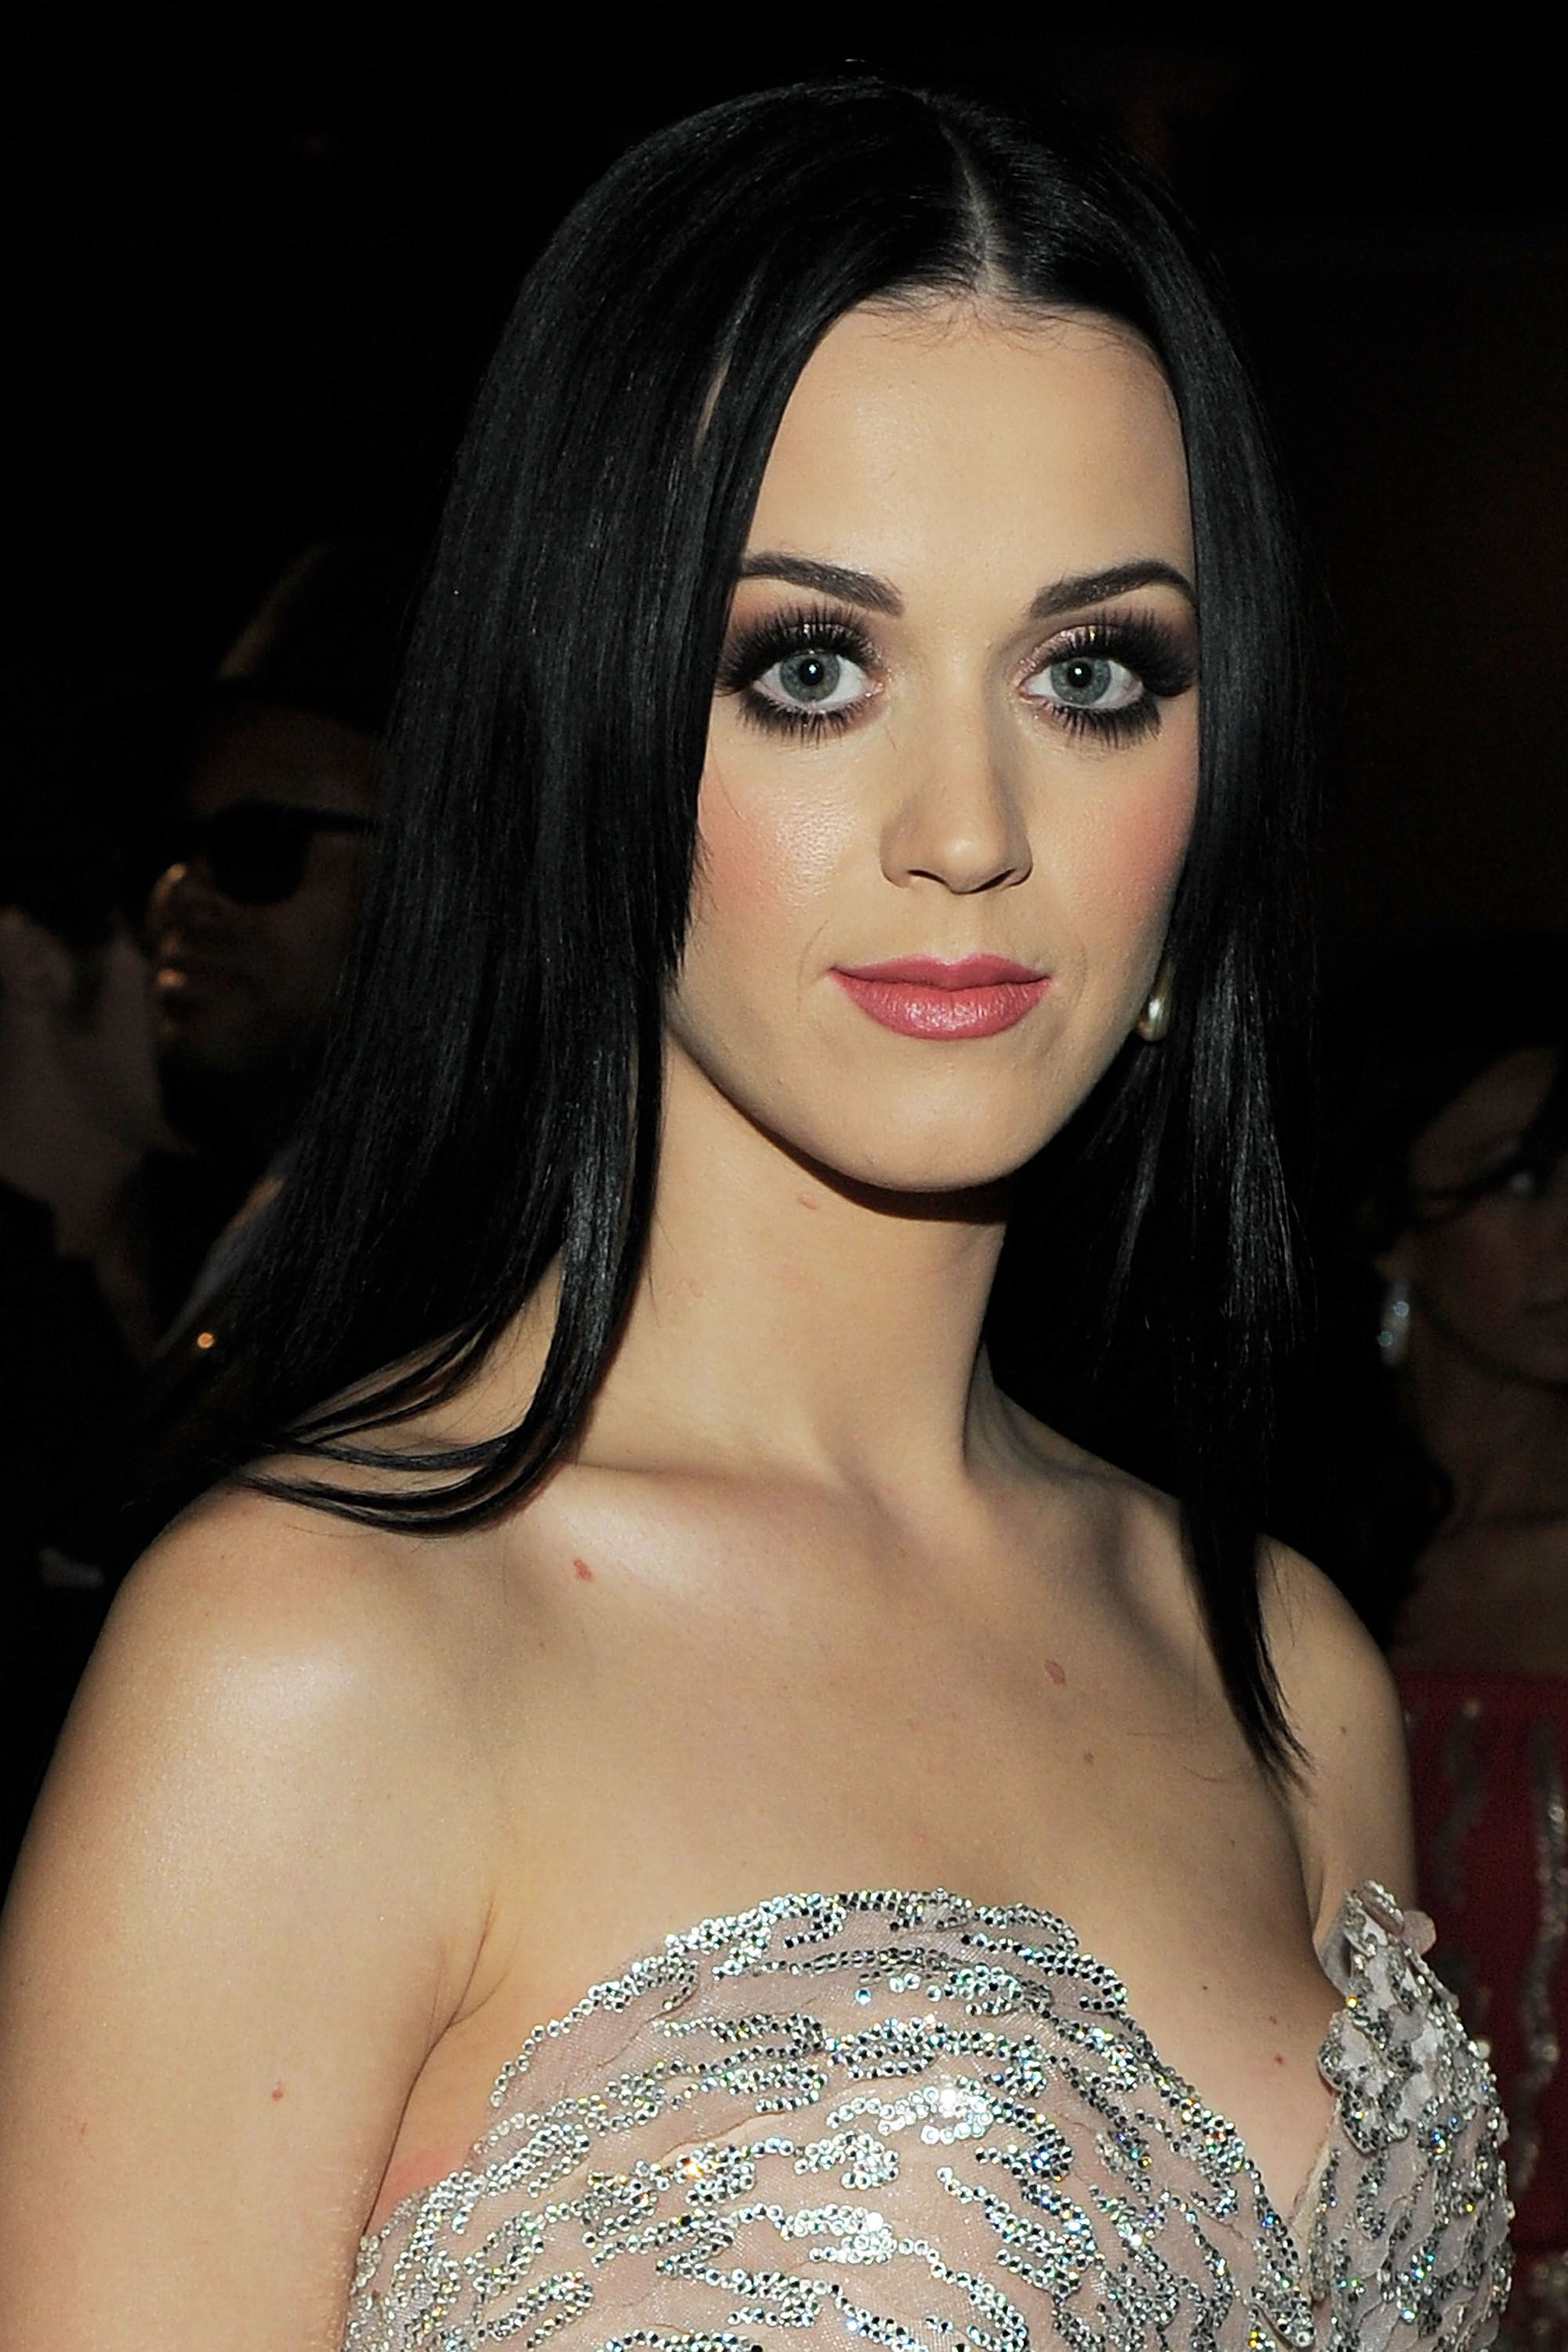 Super Bowl Prep The Evolution Of Katy Perry S Many Hairstyles Katy Perry Hair Straight Hairstyles Party Hairstyles